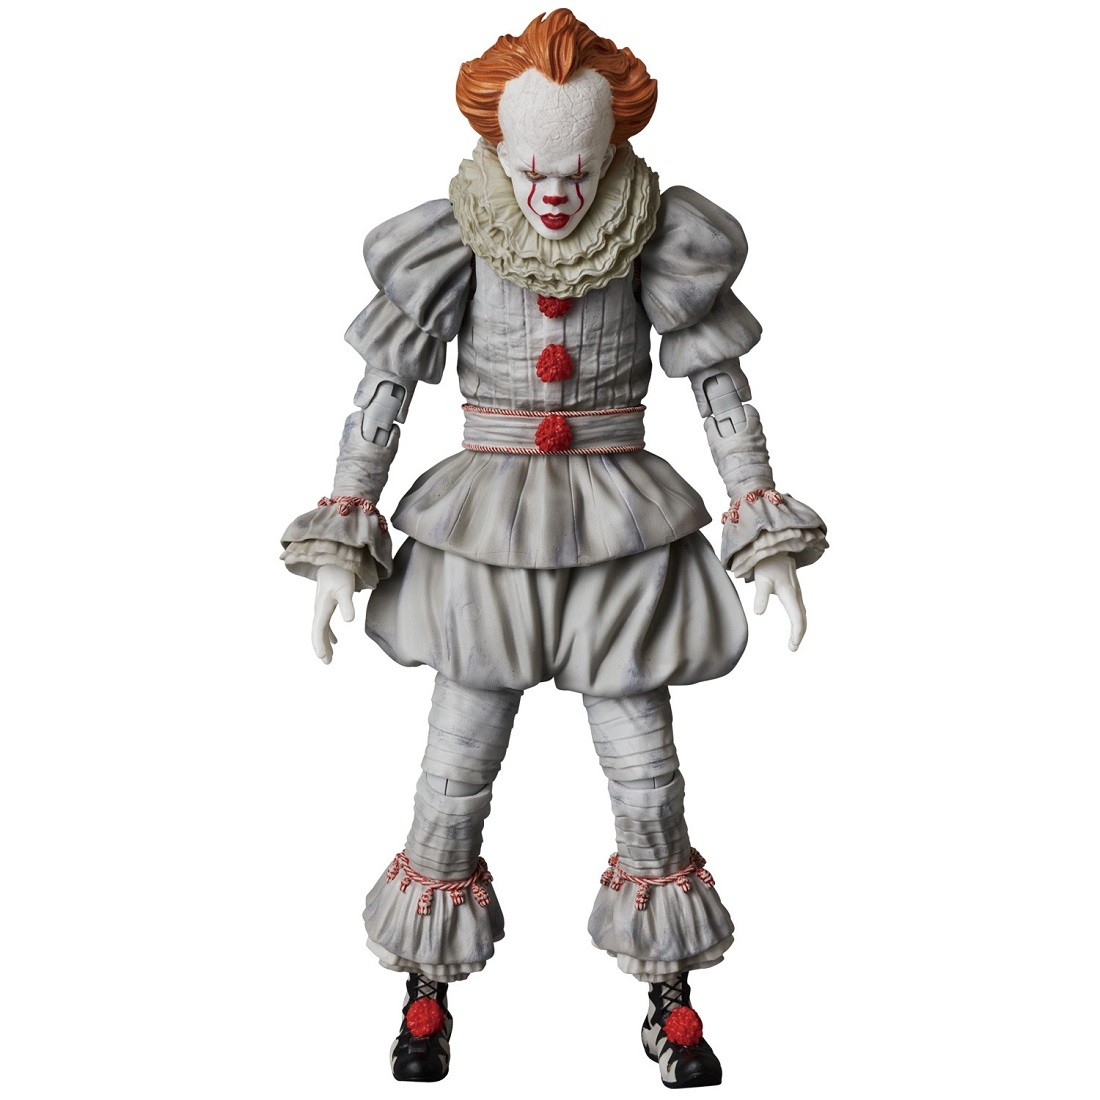 PREORDER - Medicom It Pennywise MAFEX Figure (white)